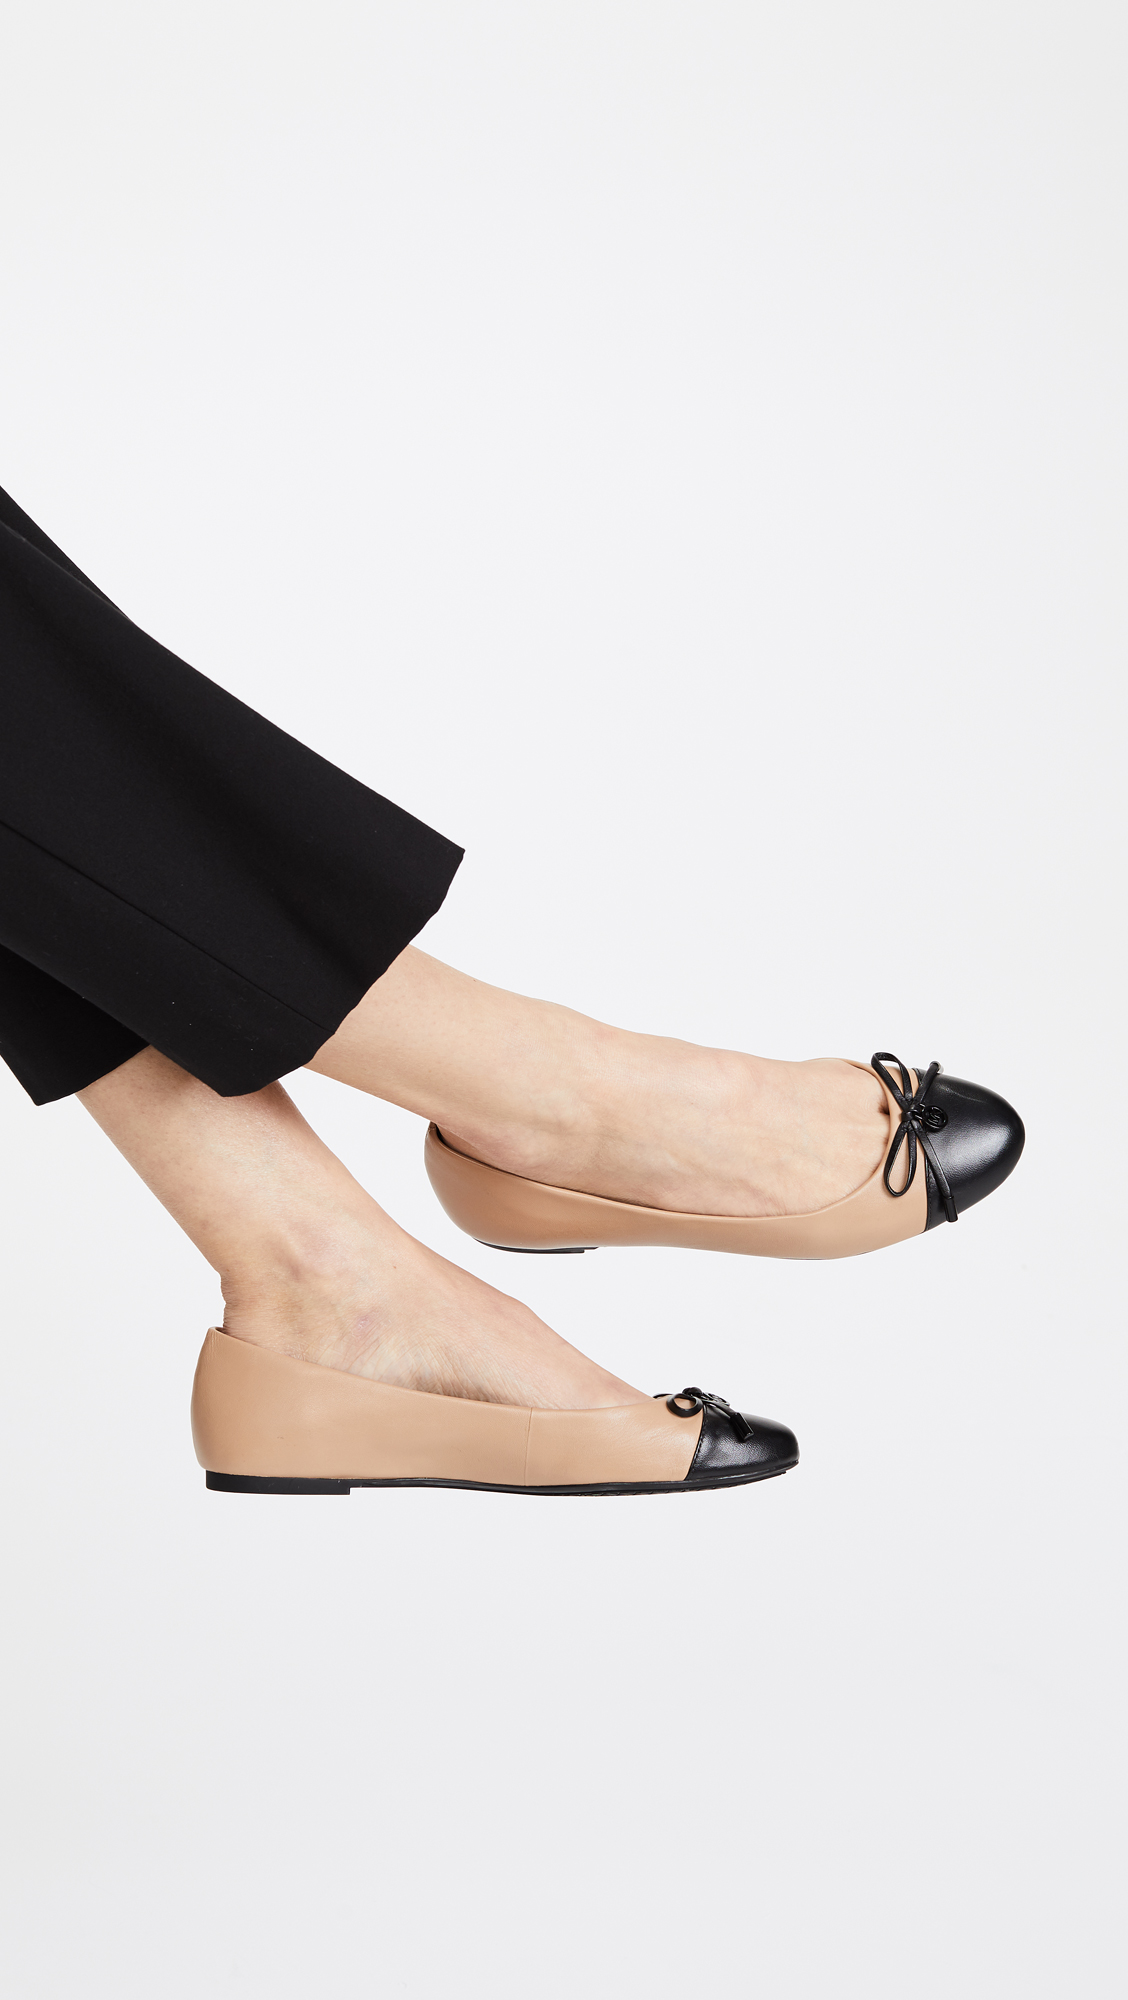 Designer Shoes And Their Dupes #6 CHANEL Ballet Flats